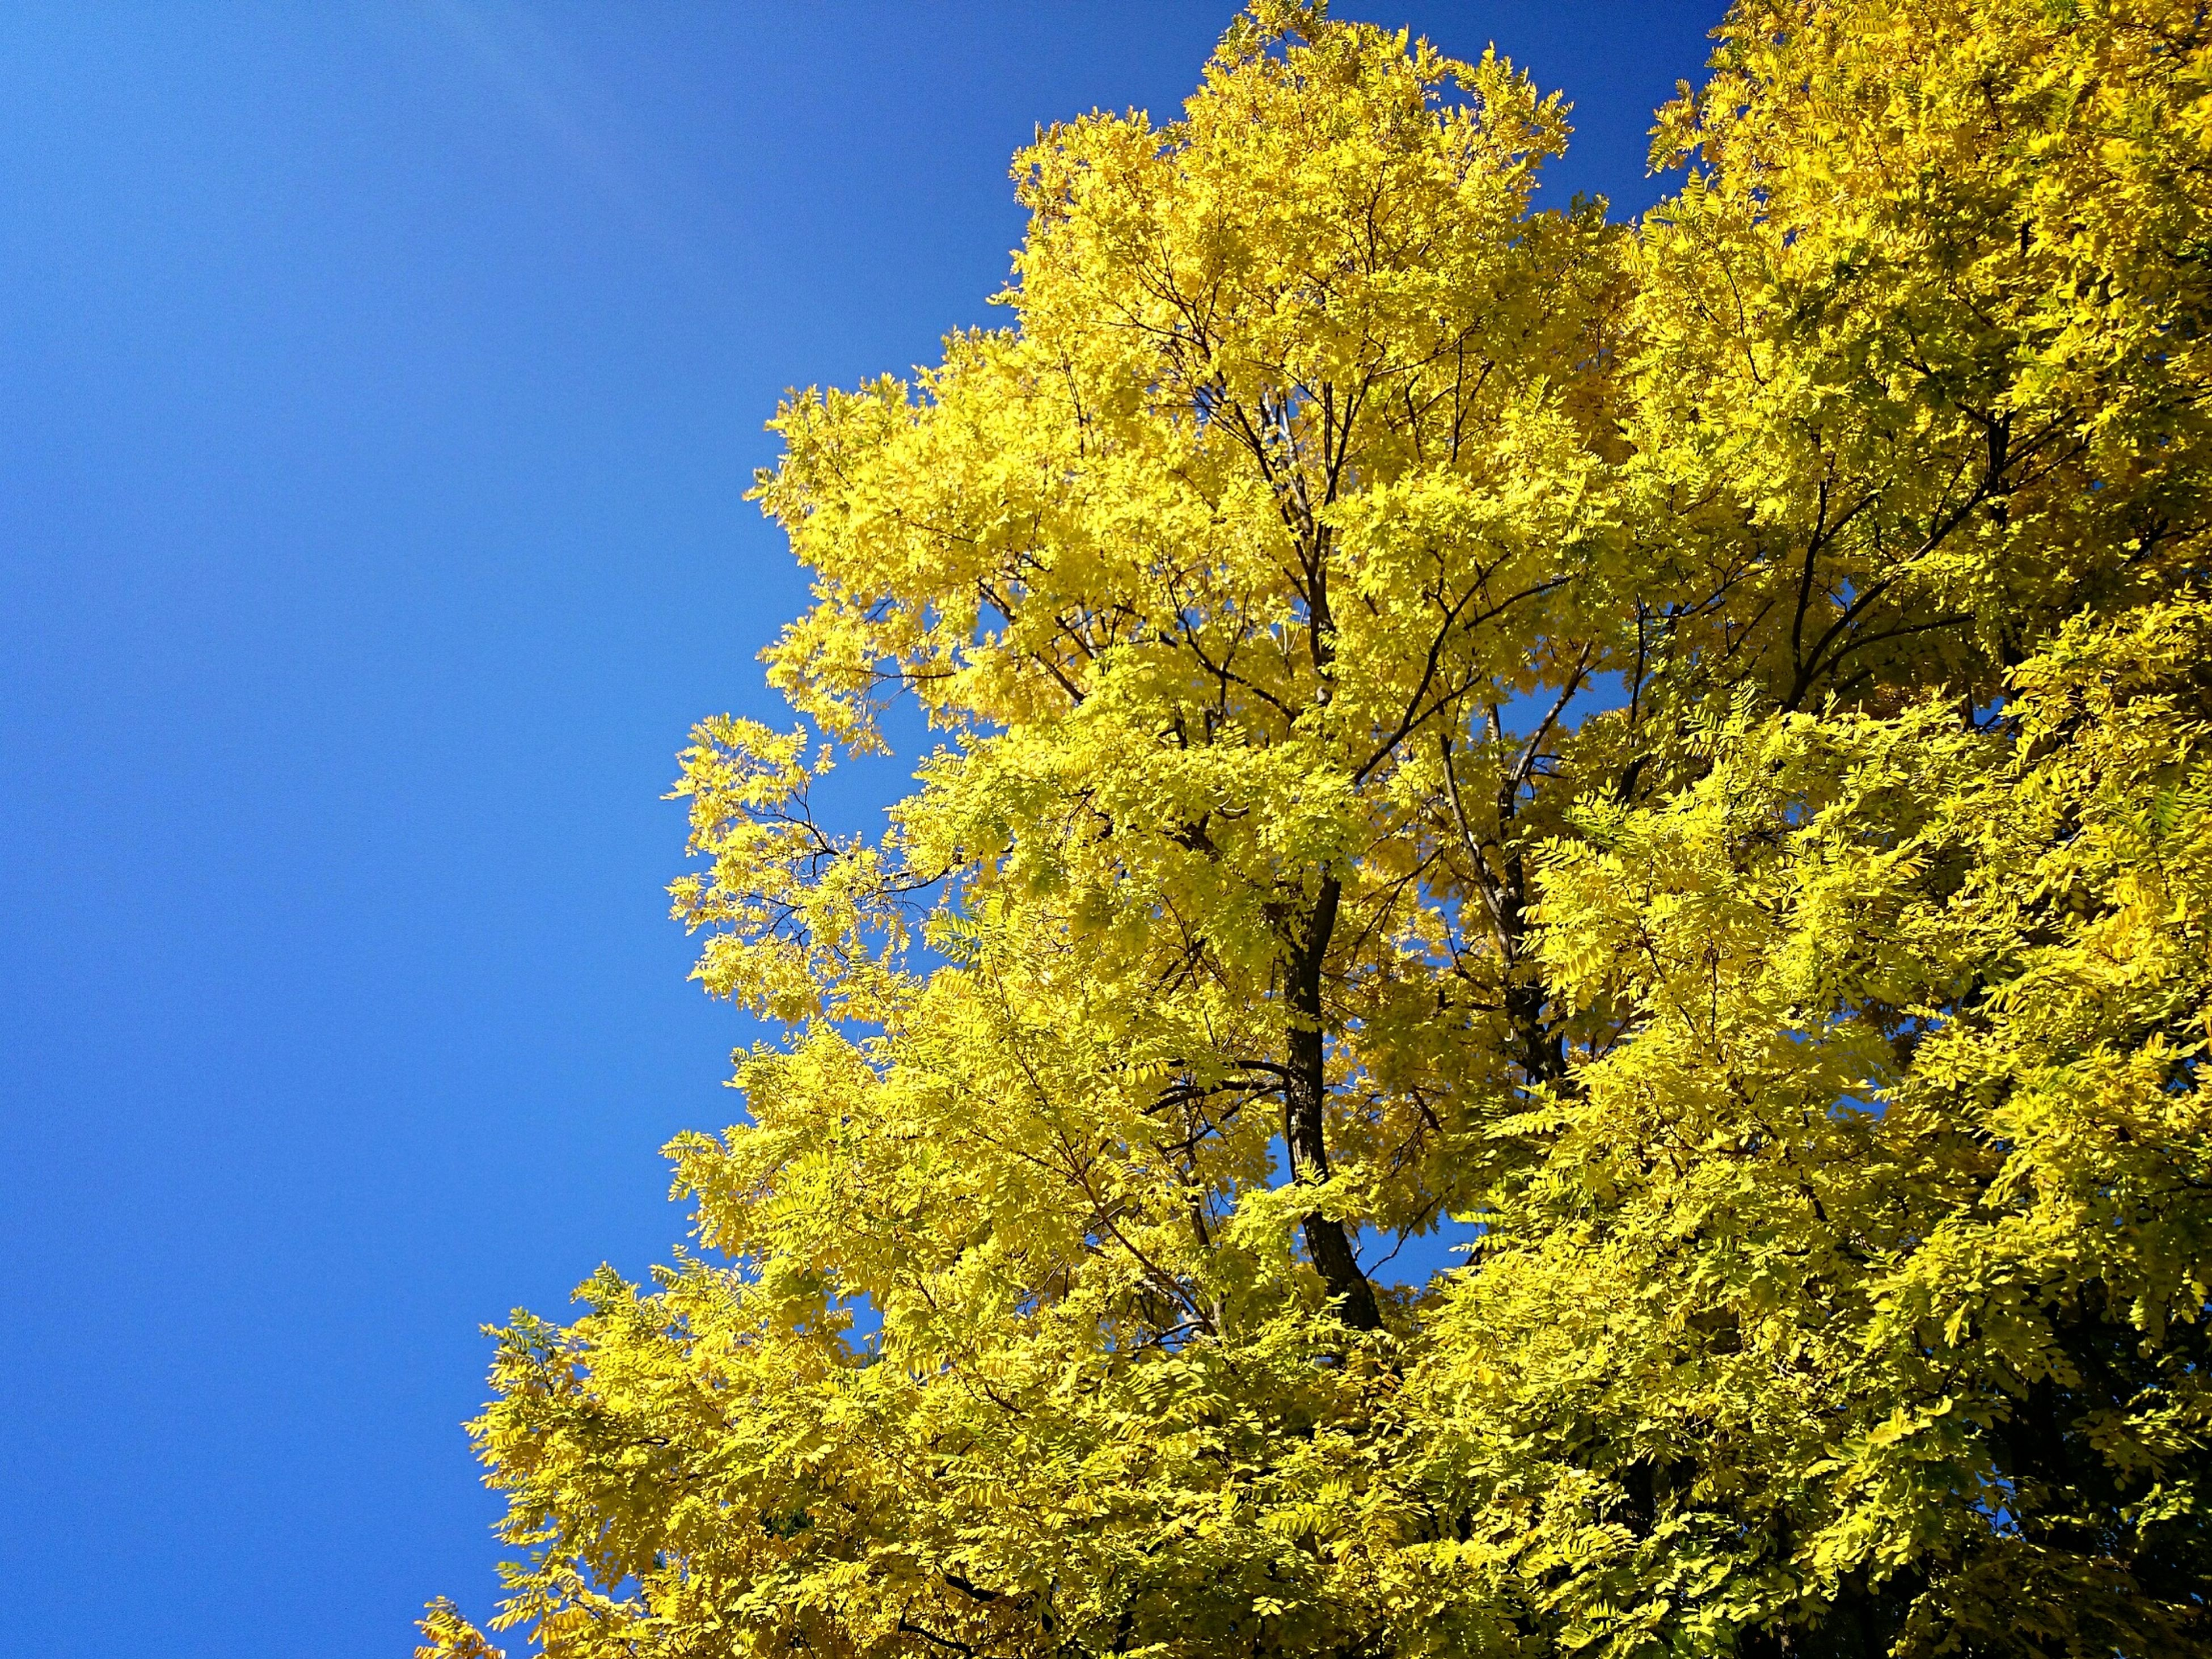 blue, clear sky, tree, low angle view, growth, nature, beauty in nature, branch, copy space, green color, sunlight, flower, tranquility, freshness, yellow, day, green, outdoors, no people, sky